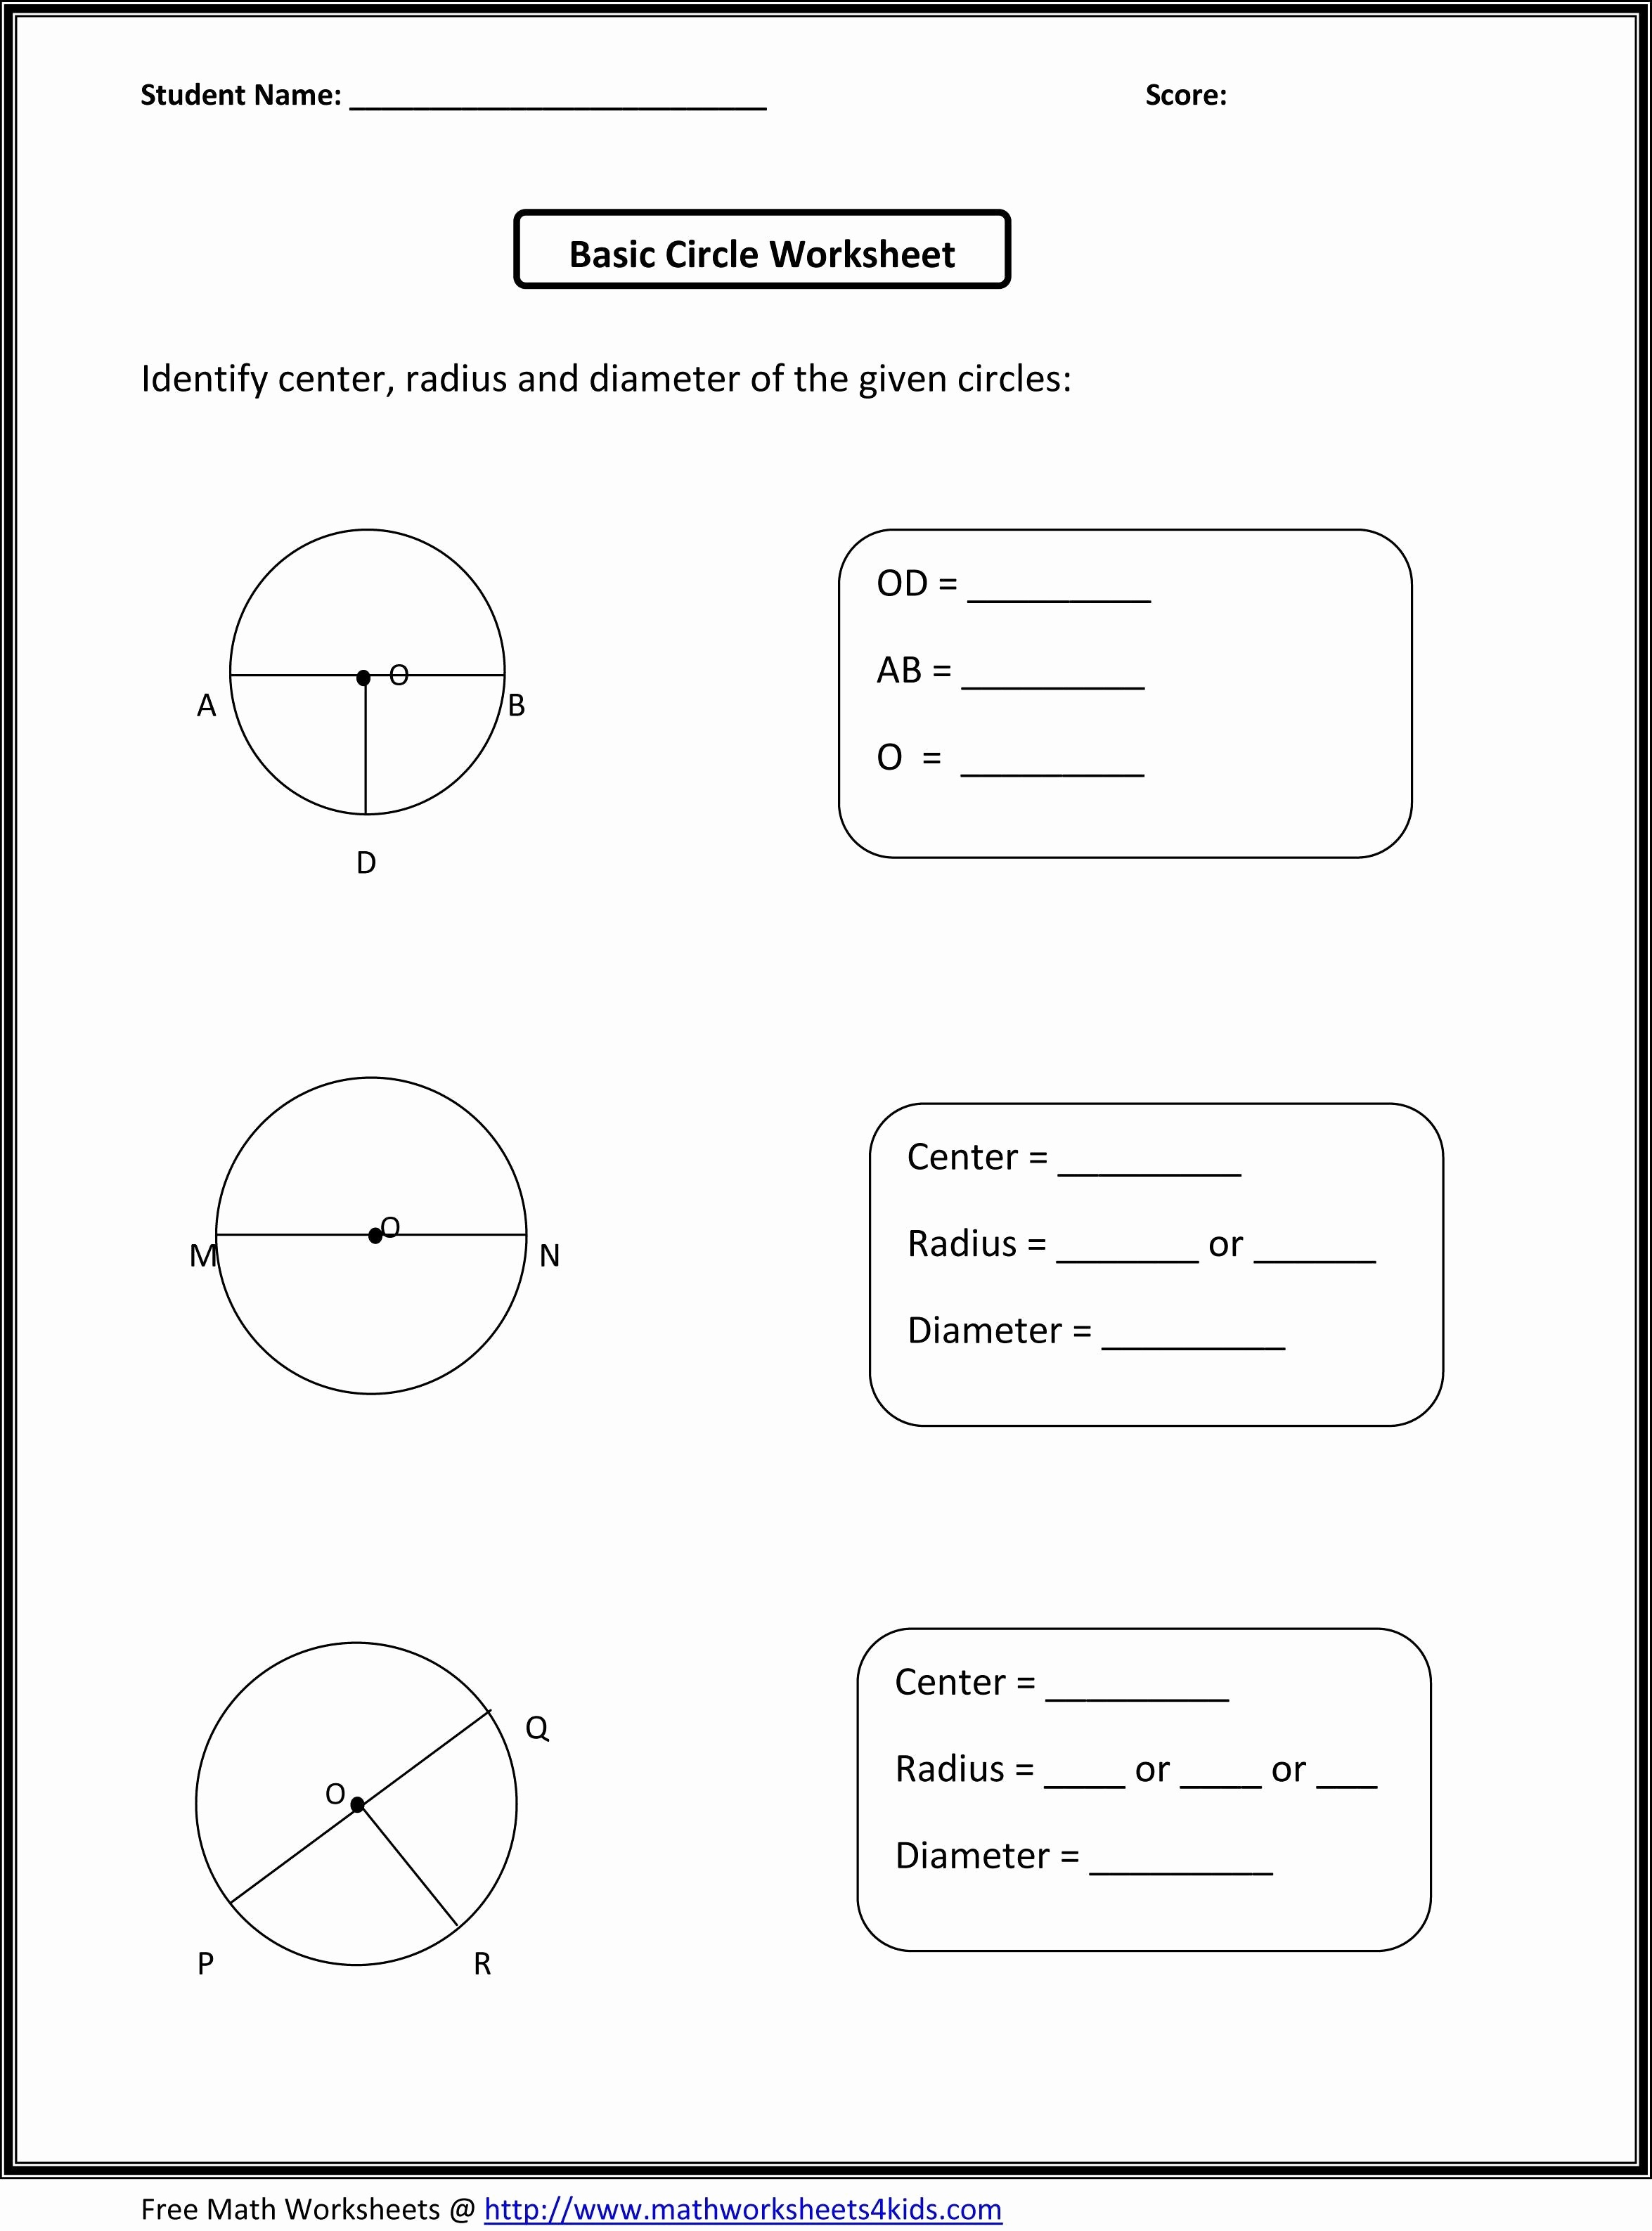 Best Free Second Grade Worksheets | Worksheet - Free Printable Itbs Practice Worksheets